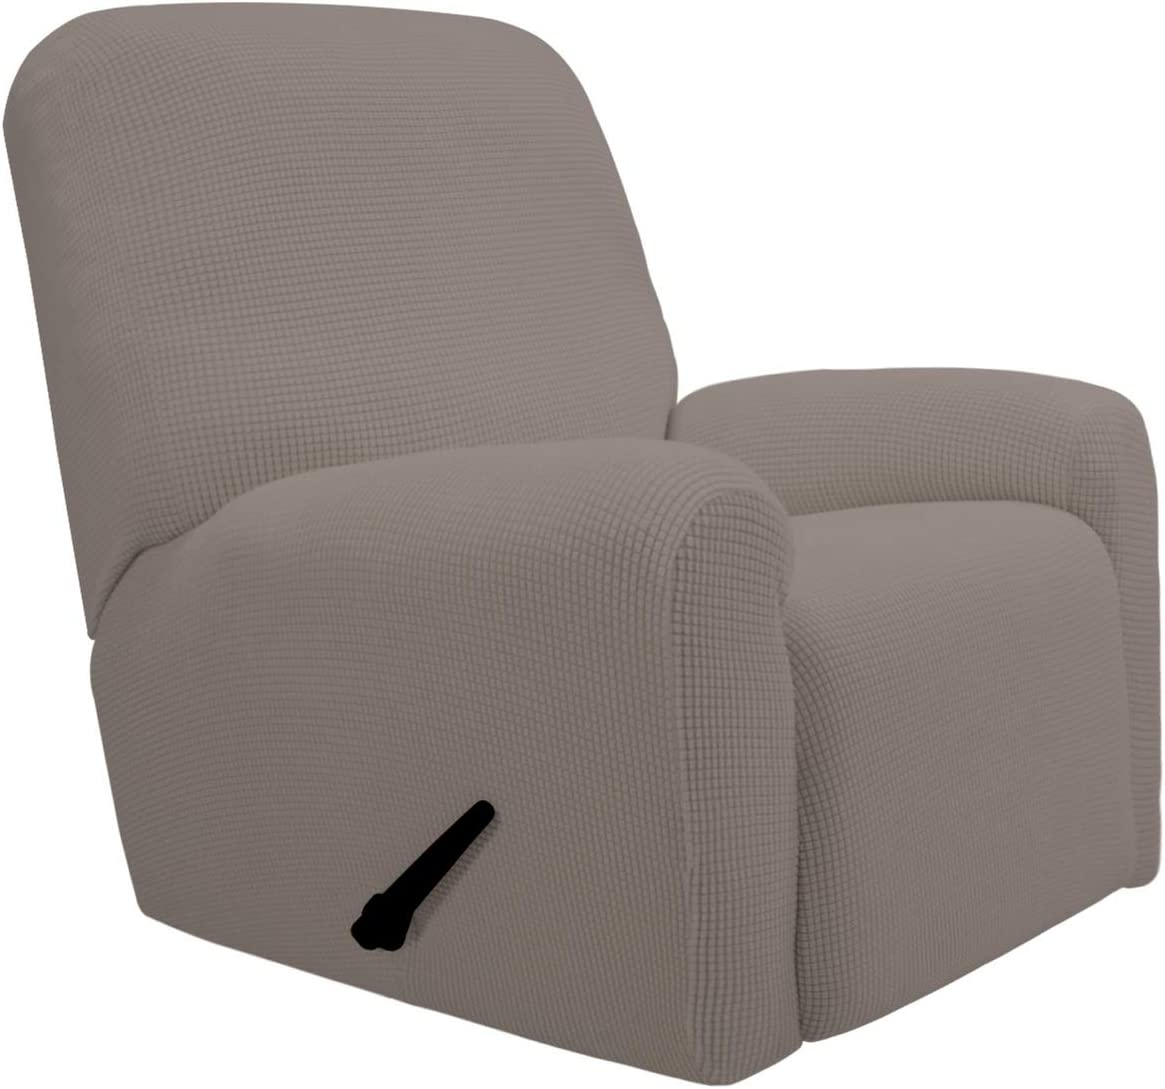 PureFit Stretch Recliner Sofa Slipcover with Pocket – Spandex Jacquard Non Slip Soft Couch Sofa Cover, Washable Furniture Protector with Elastic Bottom for Kids (Recliner, Taupe)